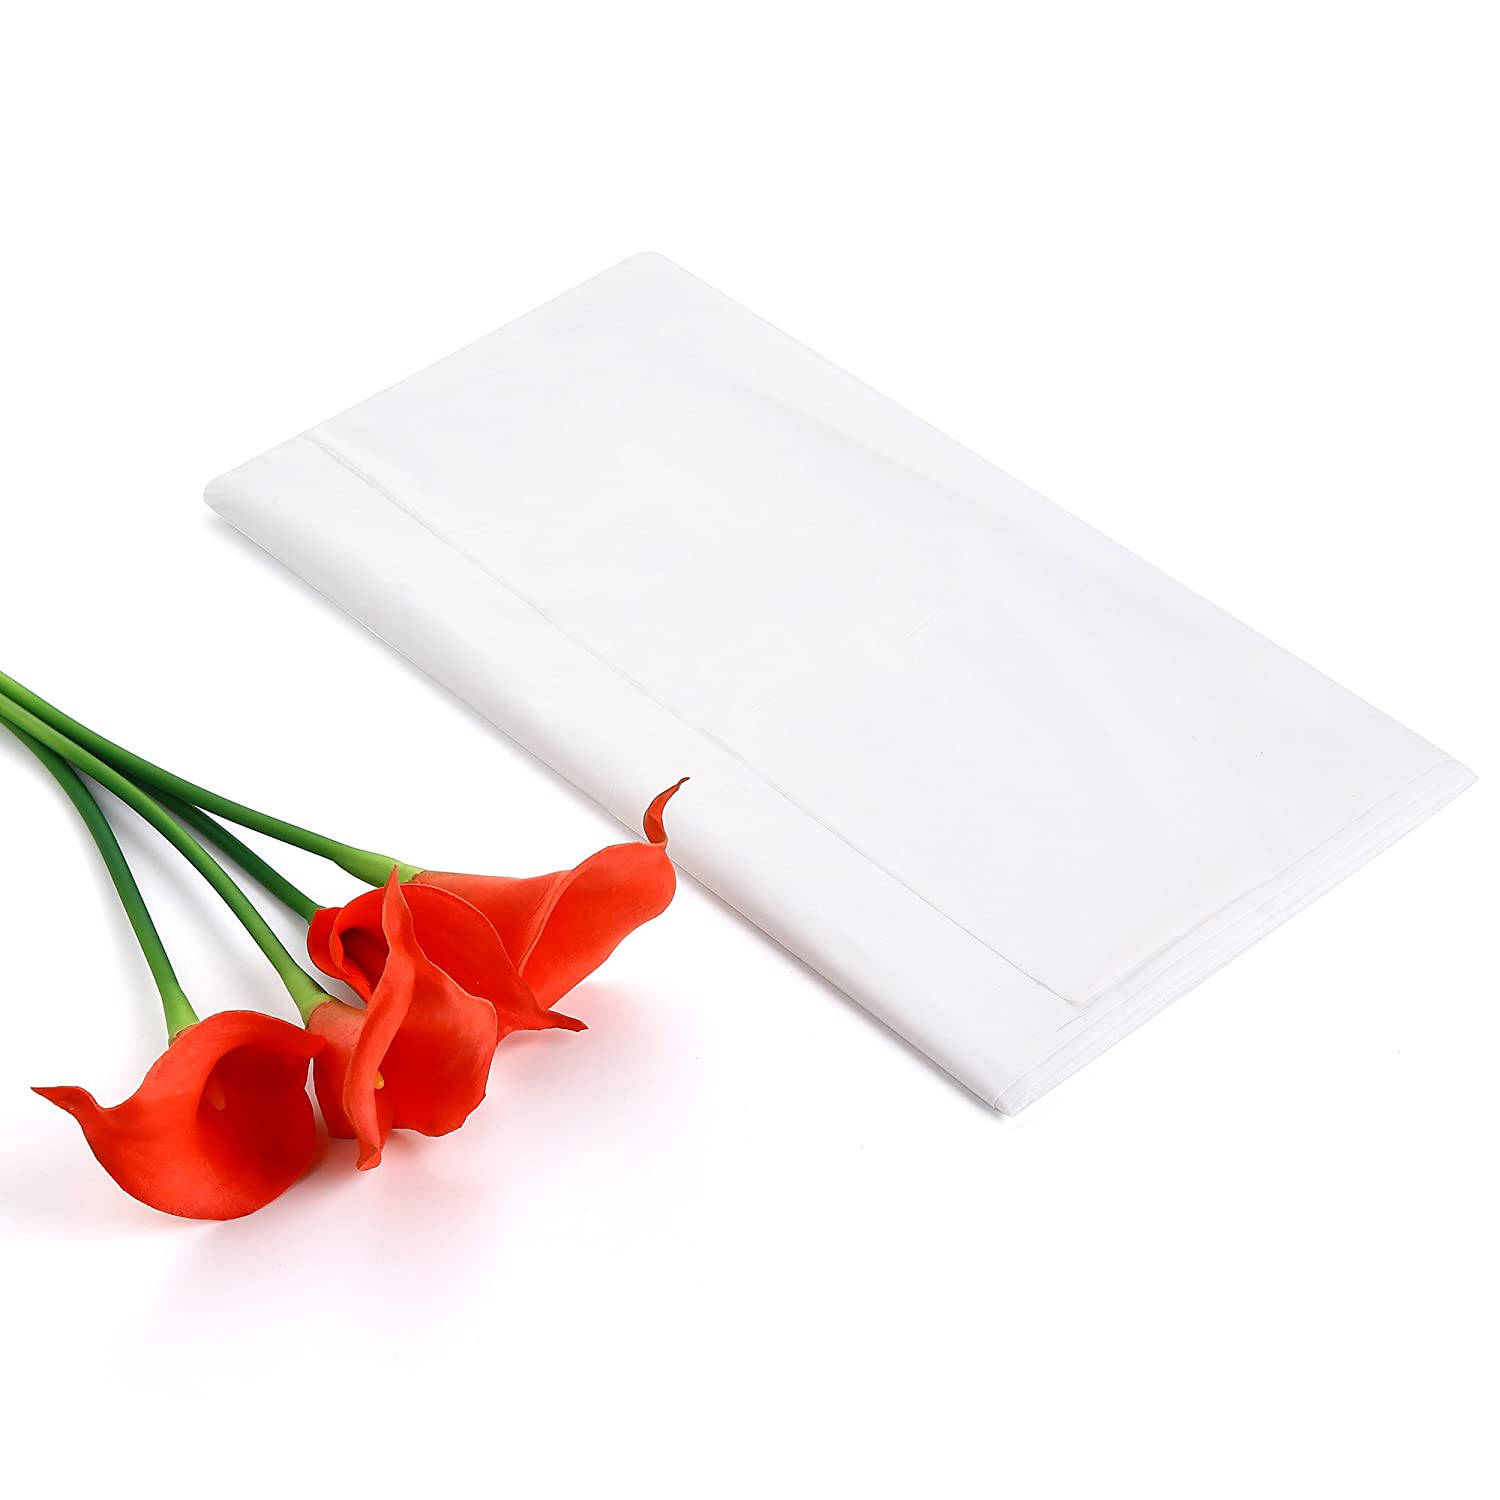 12-Pack Heavy Duty Plastic Tablecloth rectangular 54in Angelo.cn 54in. X 108in. Rectangle, White x 108in Rectangle Table Cover for rectangle table